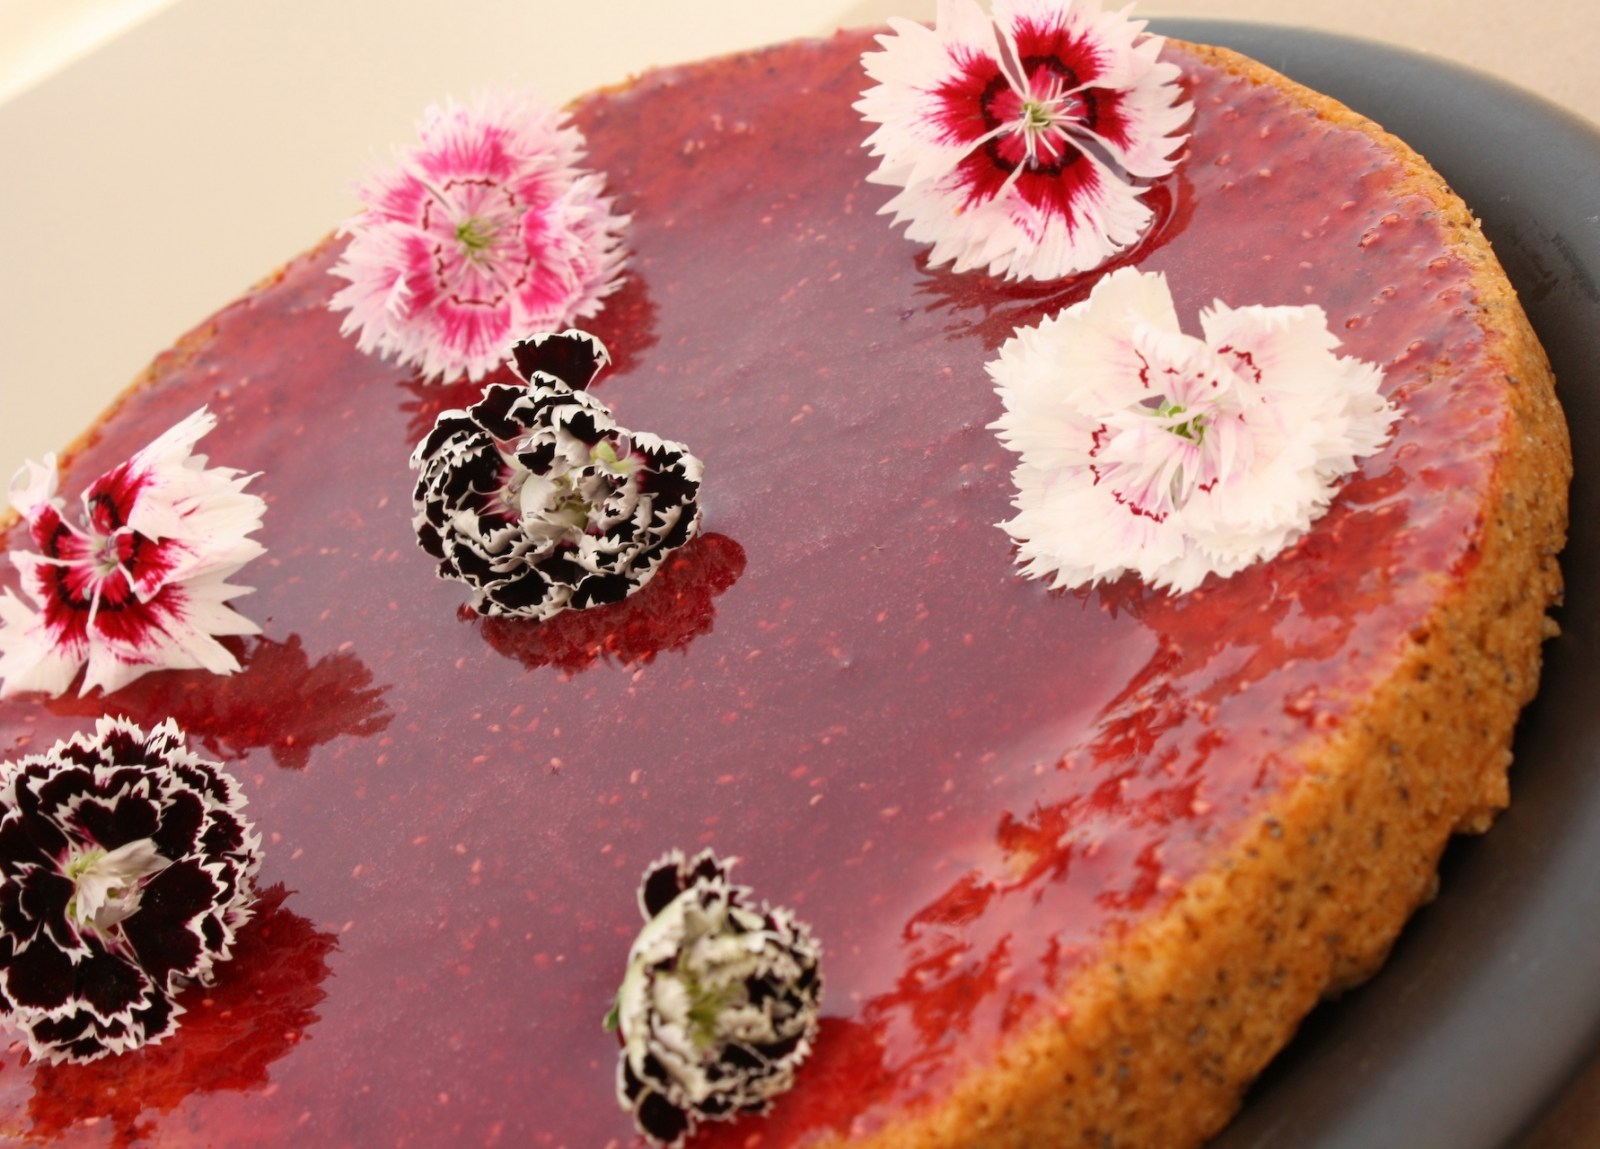 An orange-poppy seed cake, resplendent with a berry glaze and scattered with fresh edible dianthus blooms, which would make a very fitting Birthday Cake for a person born in January. ( vegan recipe )